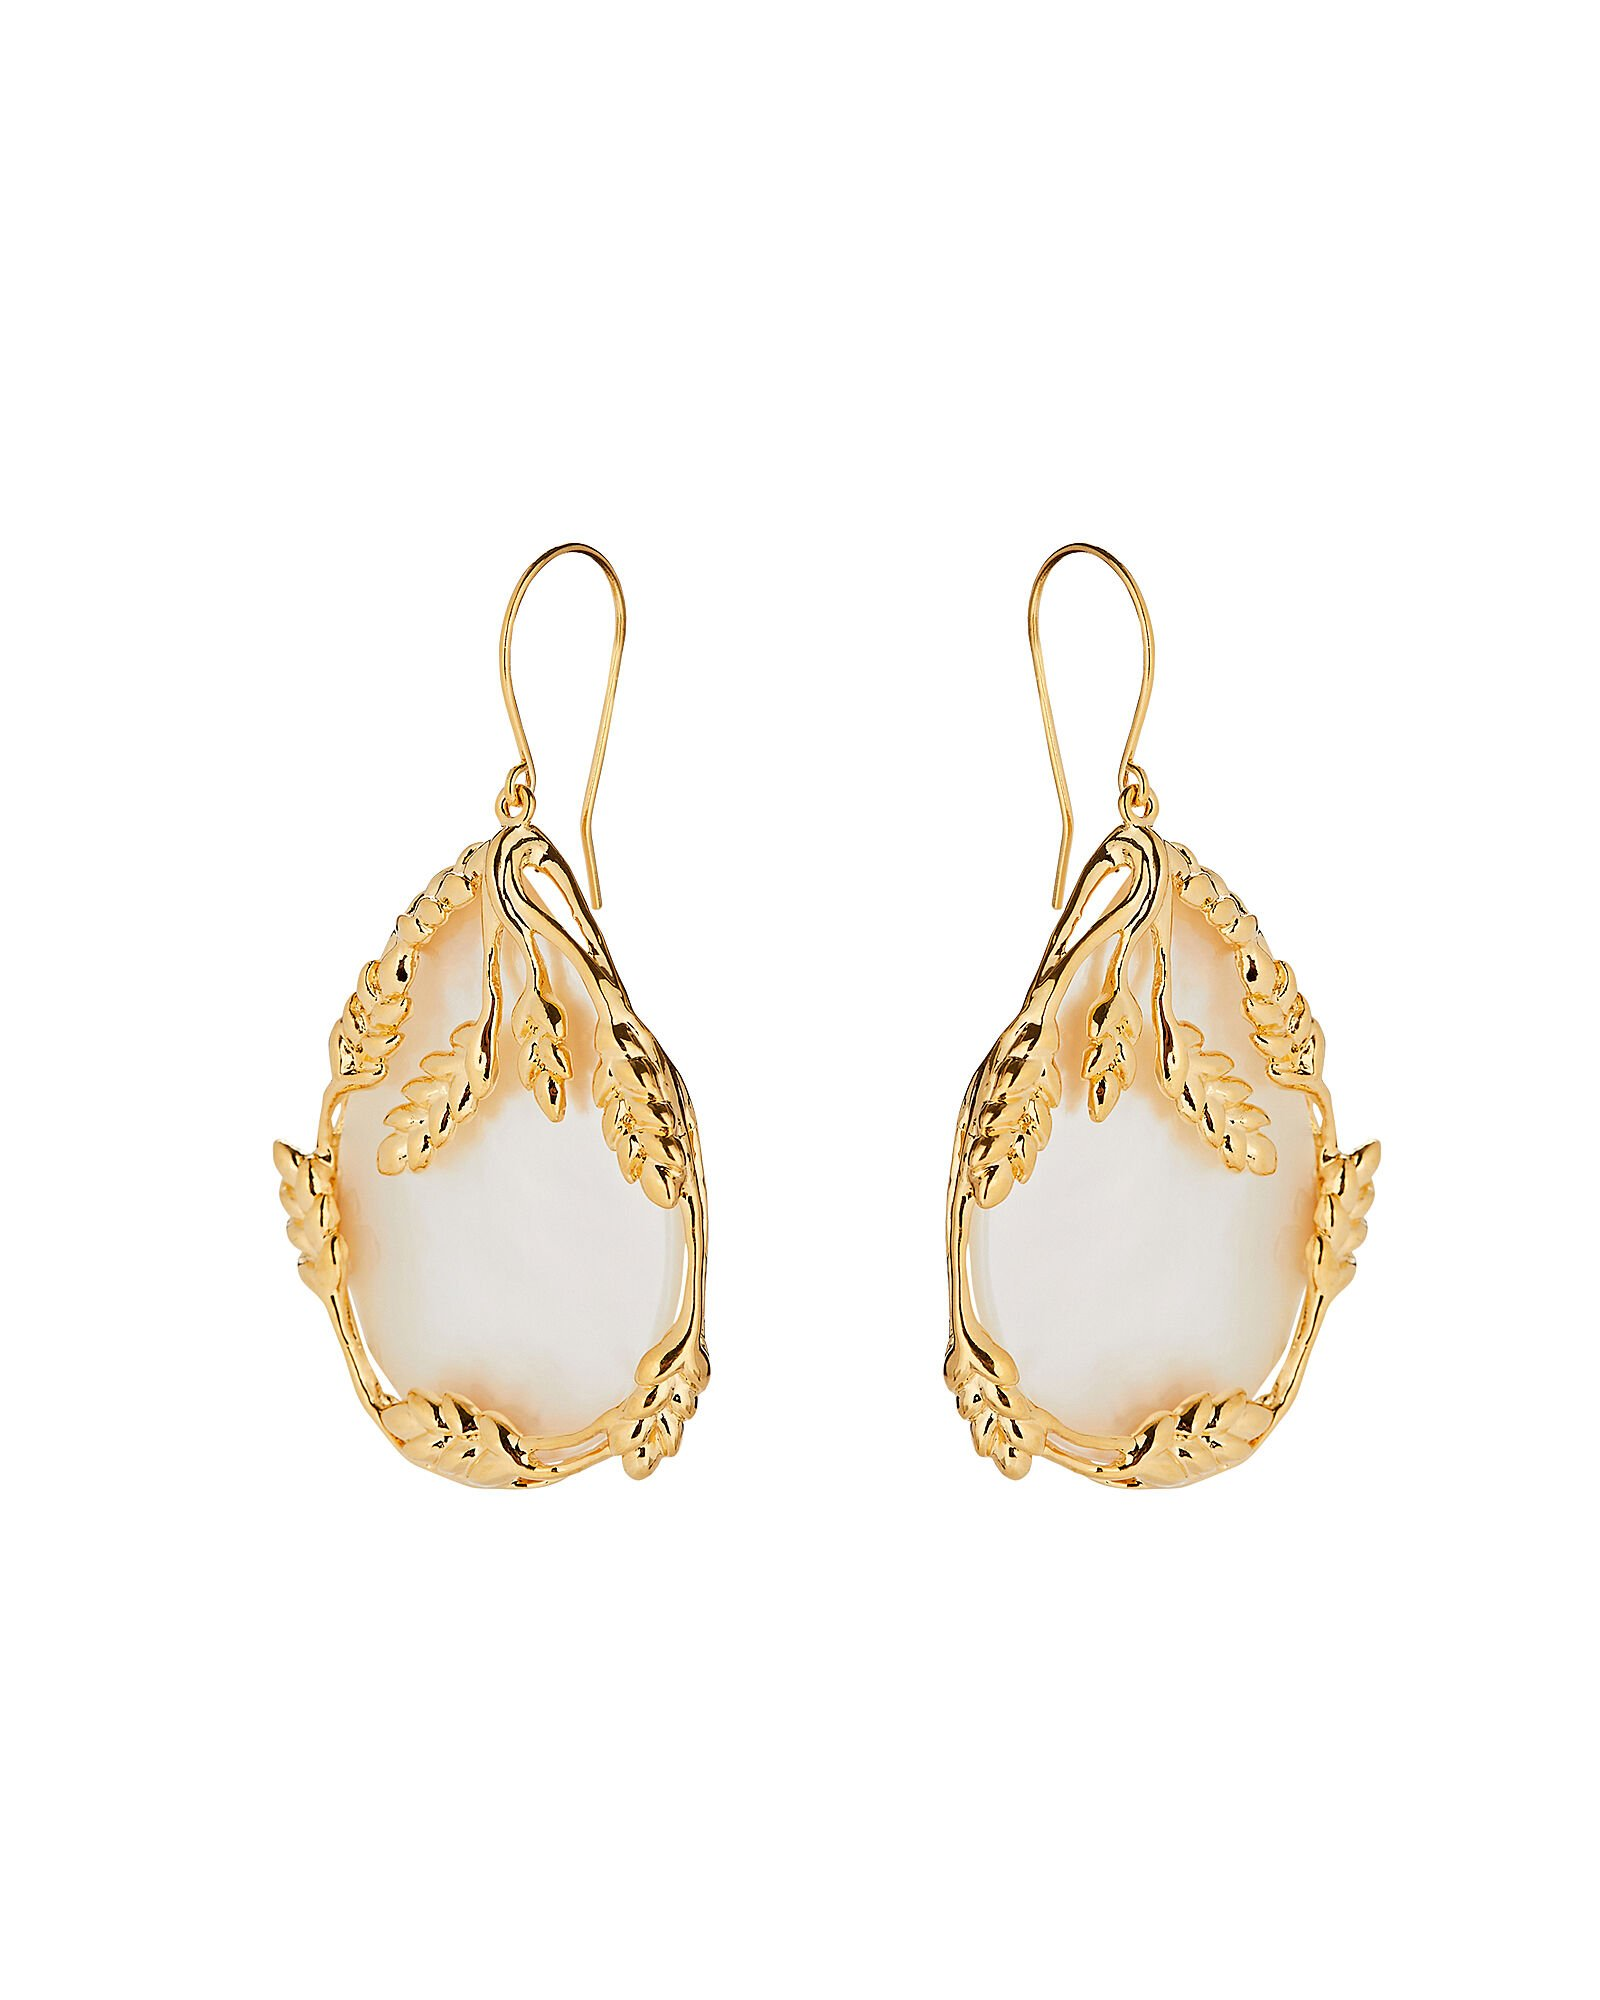 Francoise Mother-Of-Pearl Drop Earrings, IVORY, hi-res